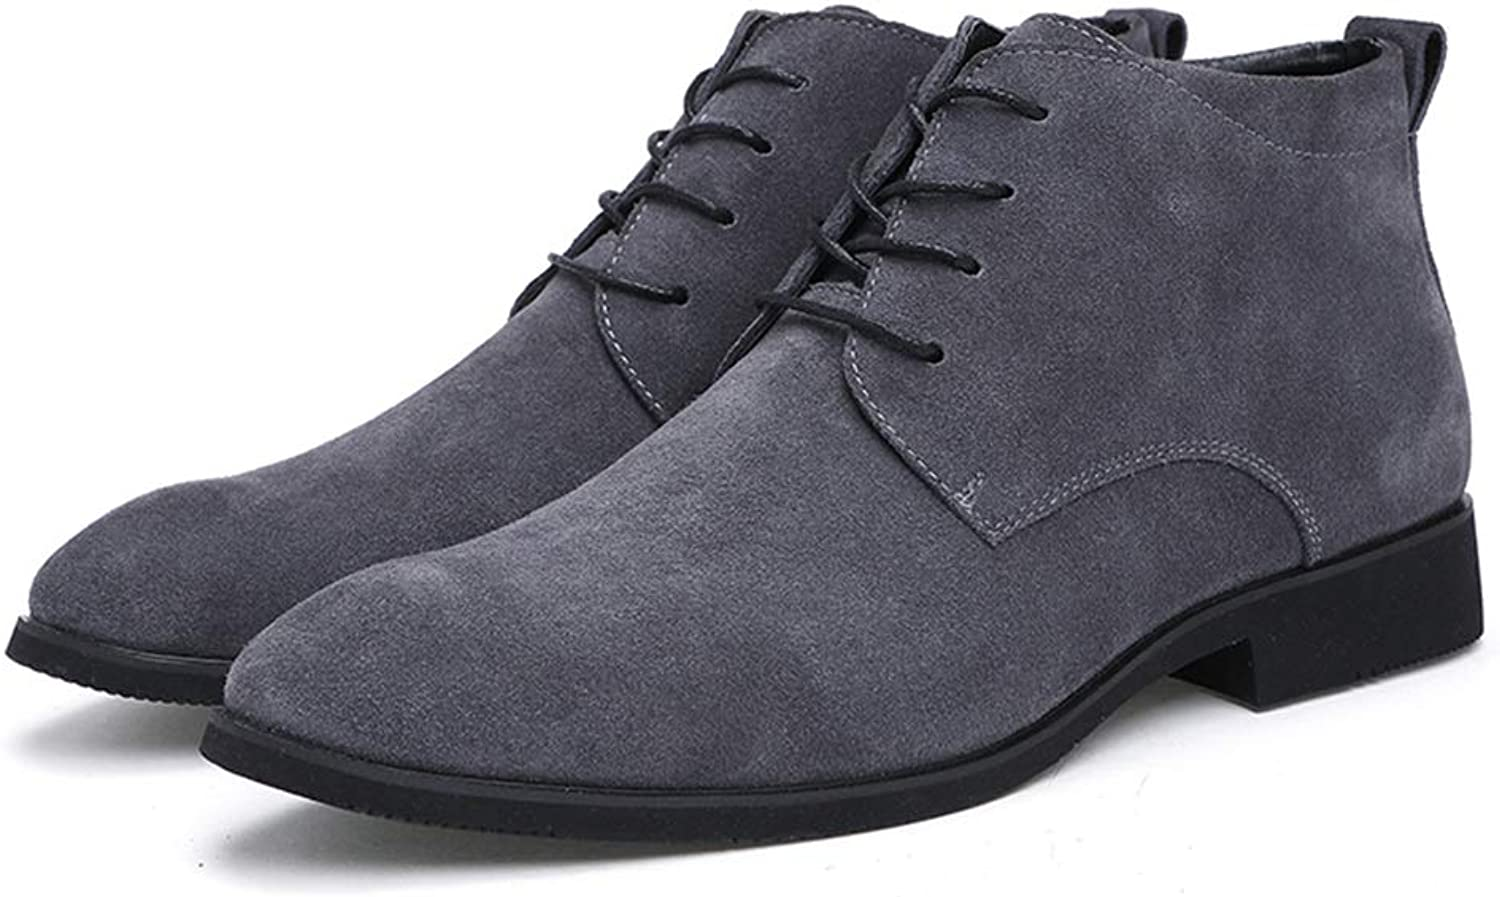 Xujw-shoes Men's Casual Solid color for Pointed Toe Fashion Ankle Boots Lacing Up High Top Boot